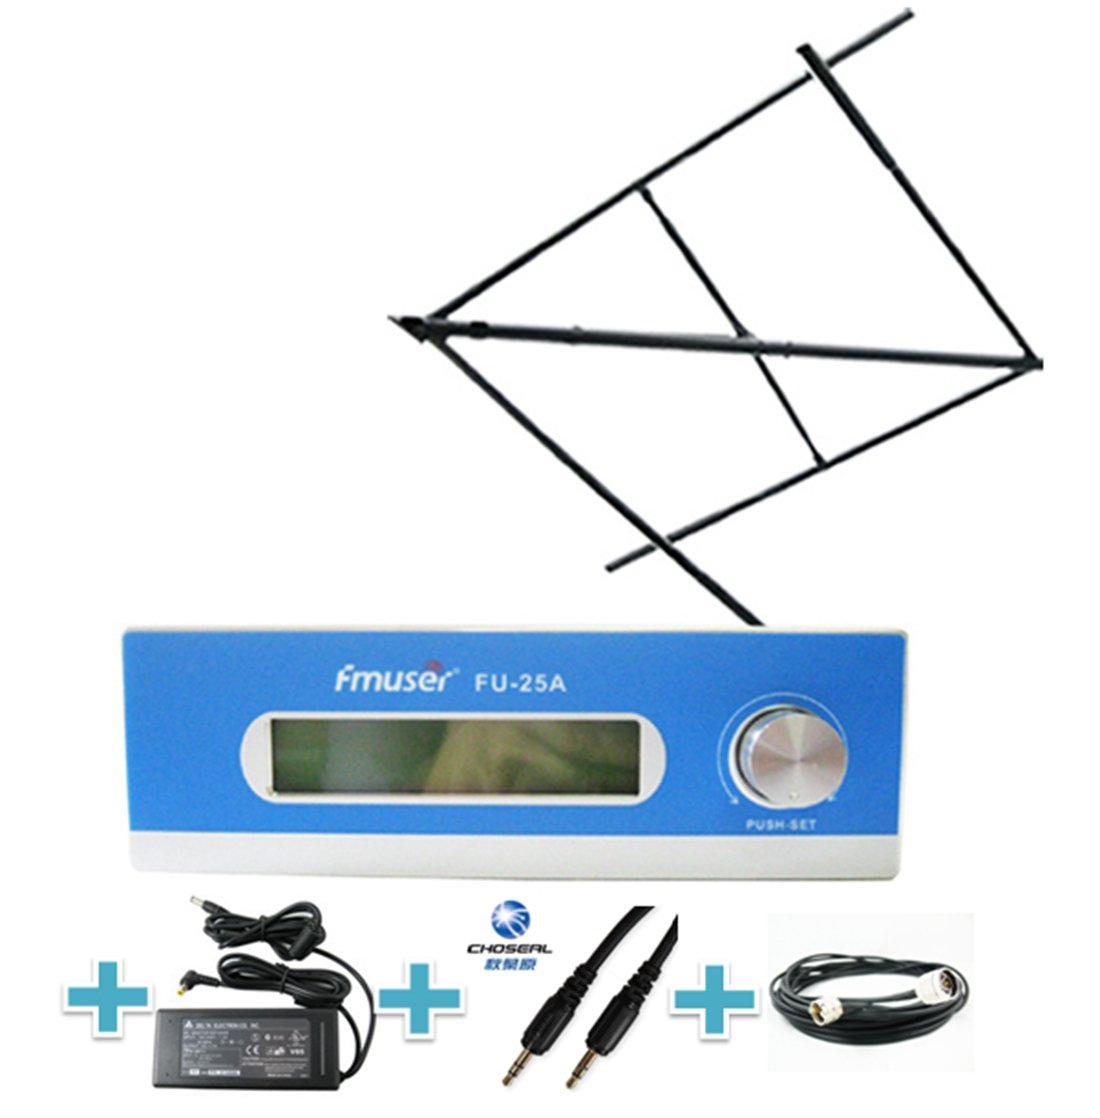 FMUSER 25W Long Range FM Transmitter Broadcast Set, 0-25W Power Adjustable Long Coverage Transmission, High Gain Circular Polarized Antenna Cable Set for Community Radio Station, 87-108mhz by fmuser